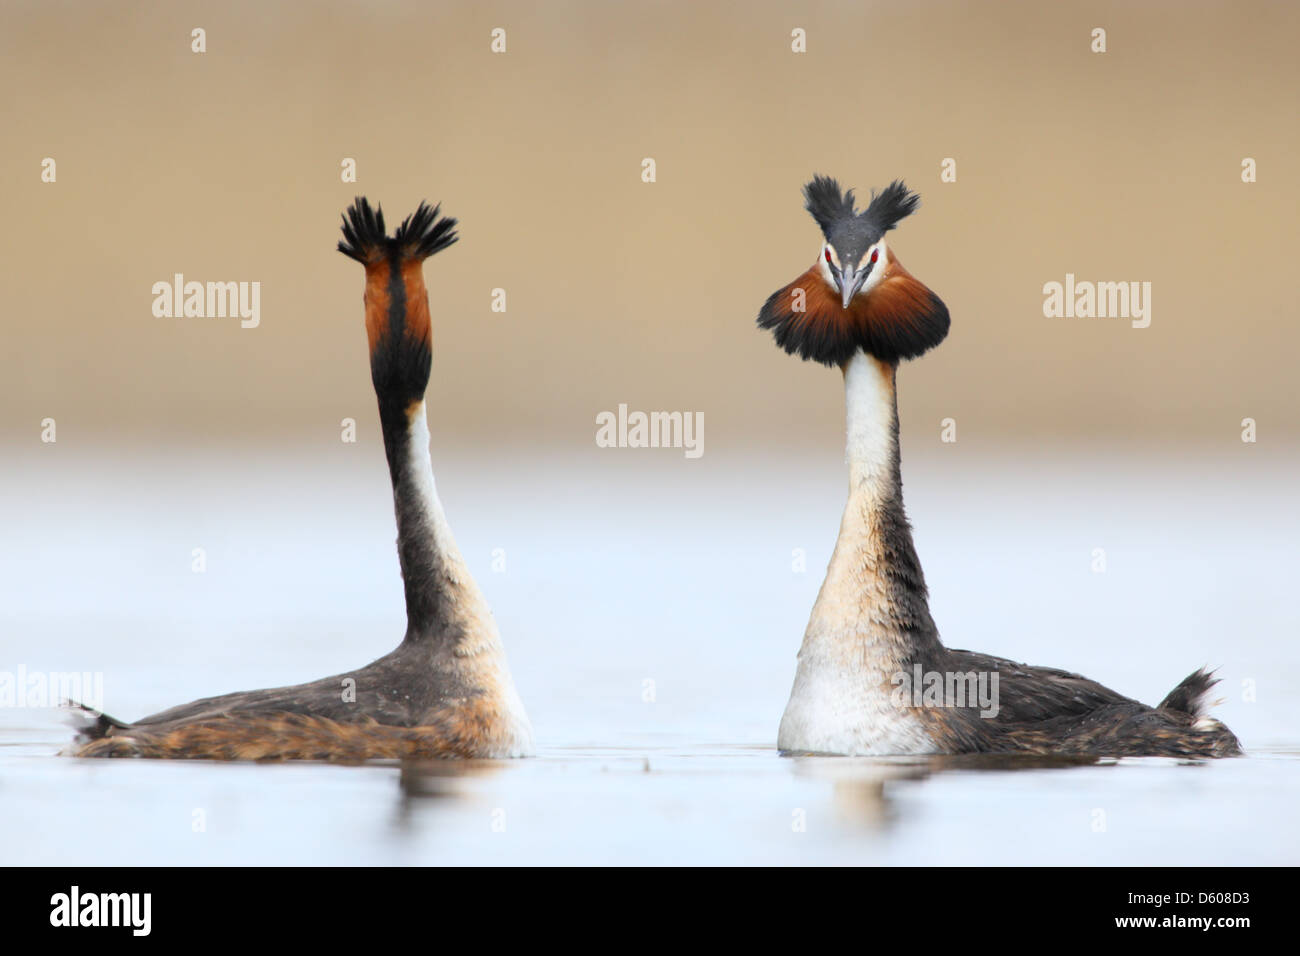 Great Crested Grebes (Podiceps cristatus)  in courtship display, shaking heads. Europe - Stock Image